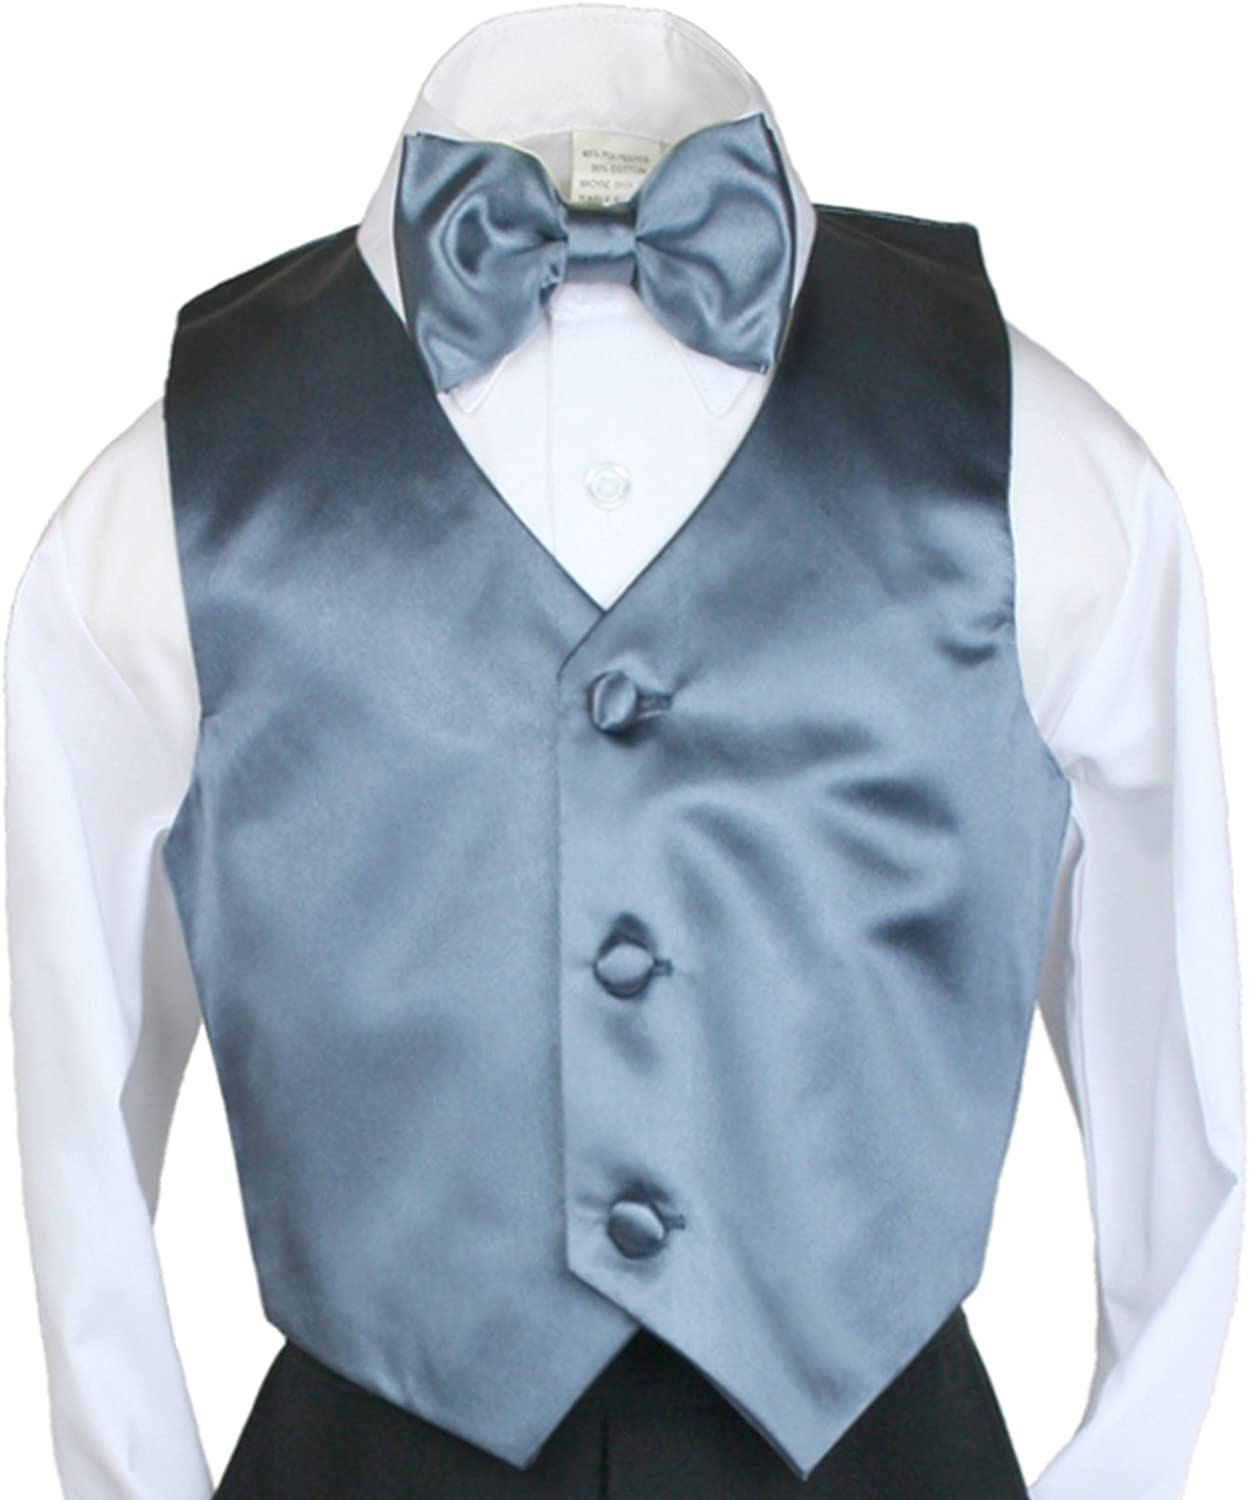 Unotux 2pc Boys Satin Dark Gray Vest and Bow tie Set from Baby to Teen